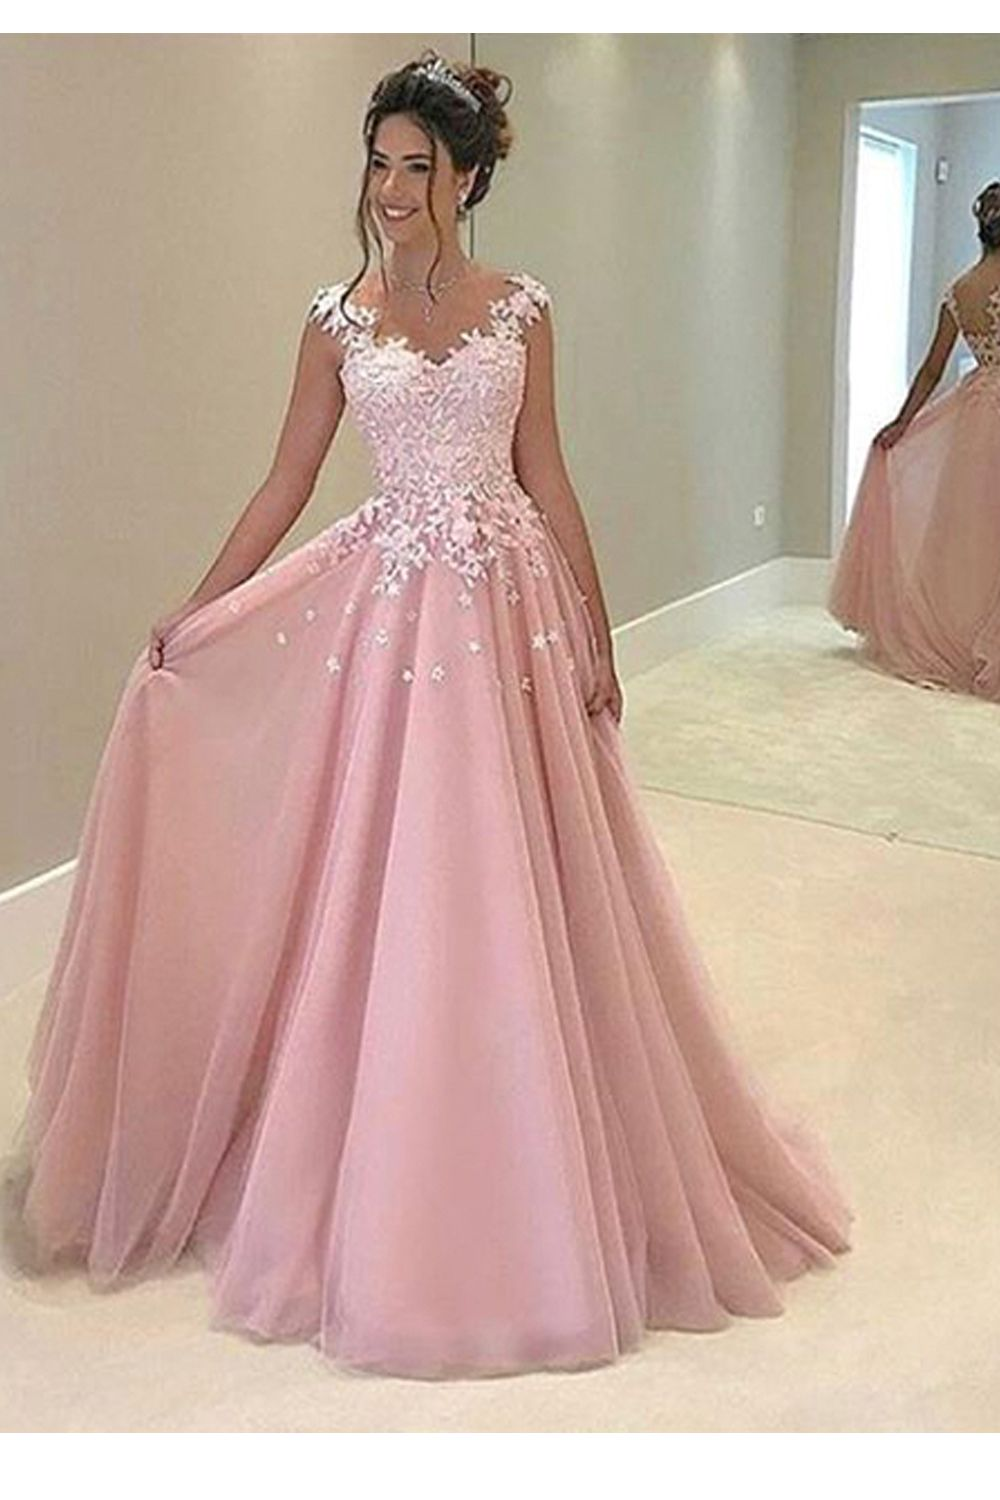 A Line Long Pink Lace Prom Dresses Formal Evening Gowns 24817 From Luckdresses In 2021 Prom Dresses Long Pink Prom Dresses For Teens Pink Evening Dress [ 1500 x 1000 Pixel ]